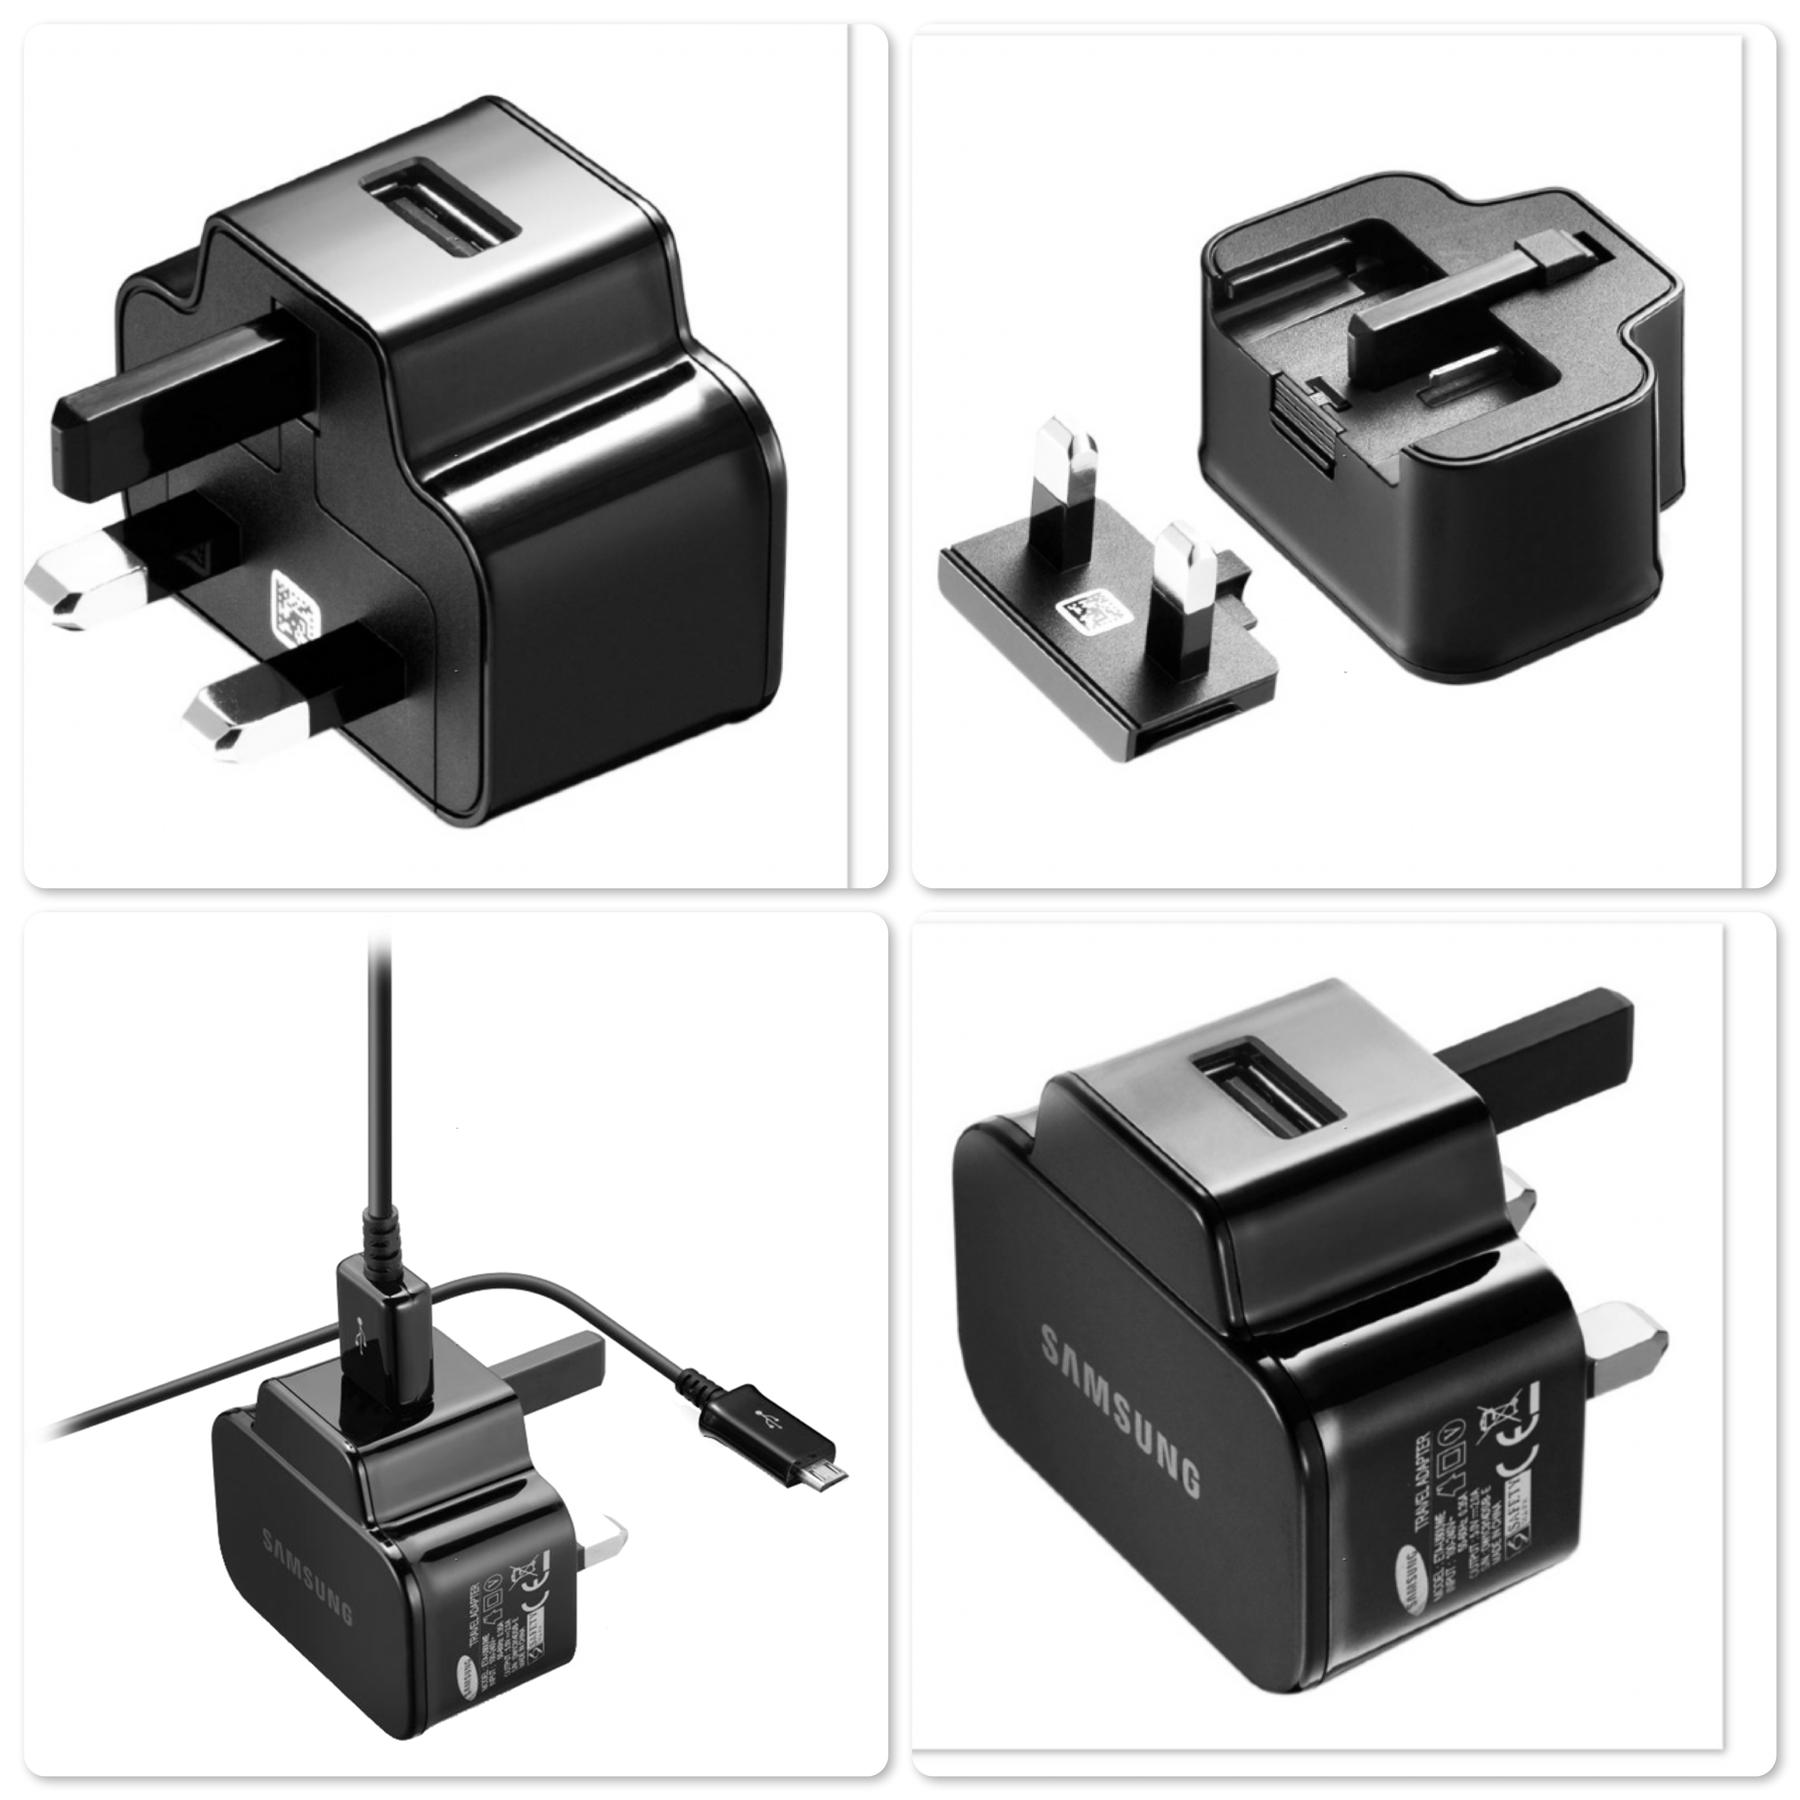 Bdotcom = ORIGINAL Samsung Universal Micro USB Travel Adapter = 10W